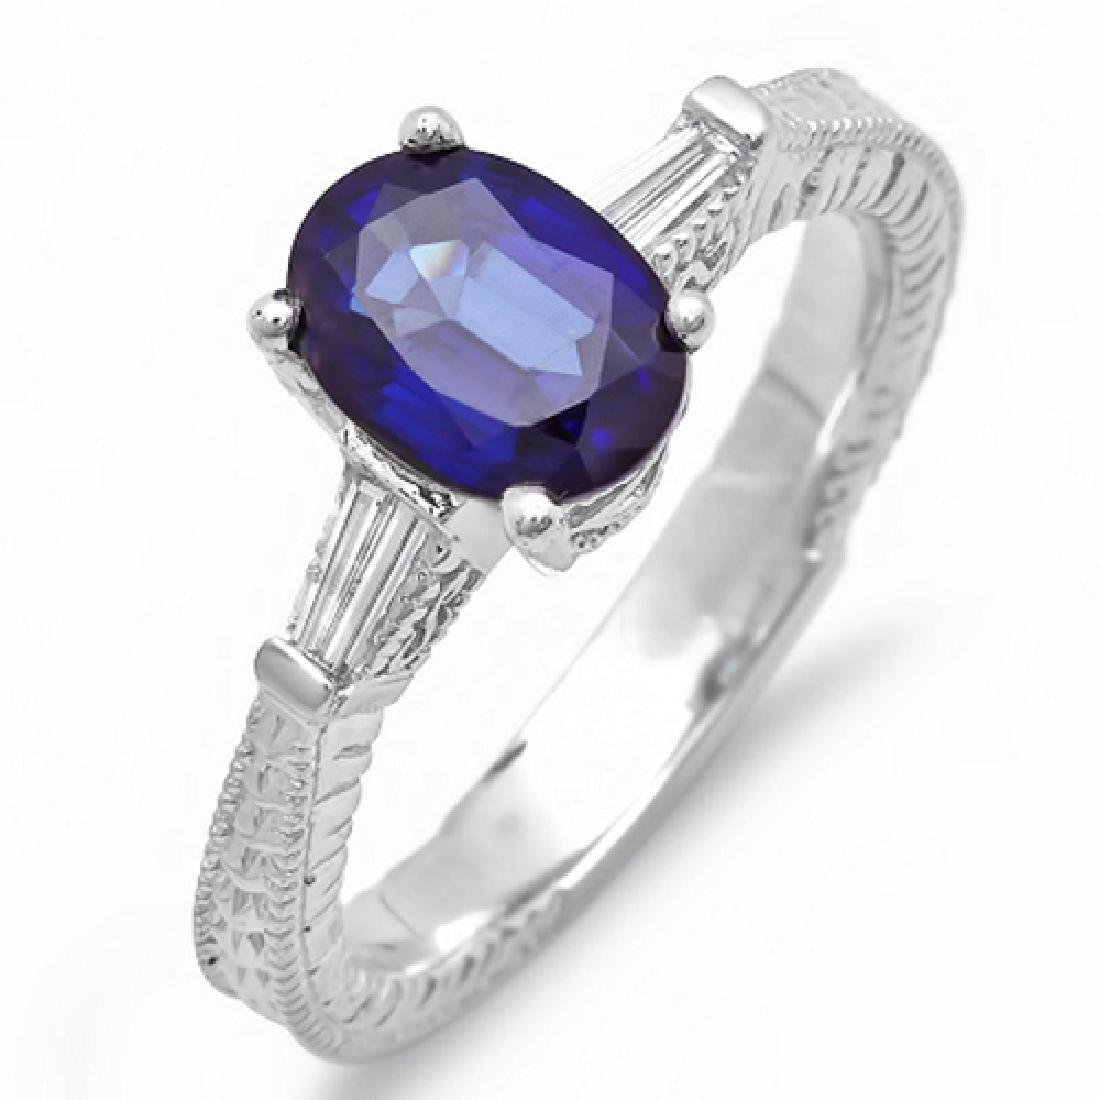 1.60 Carat Natural Sapphire 18K Solid White Gold